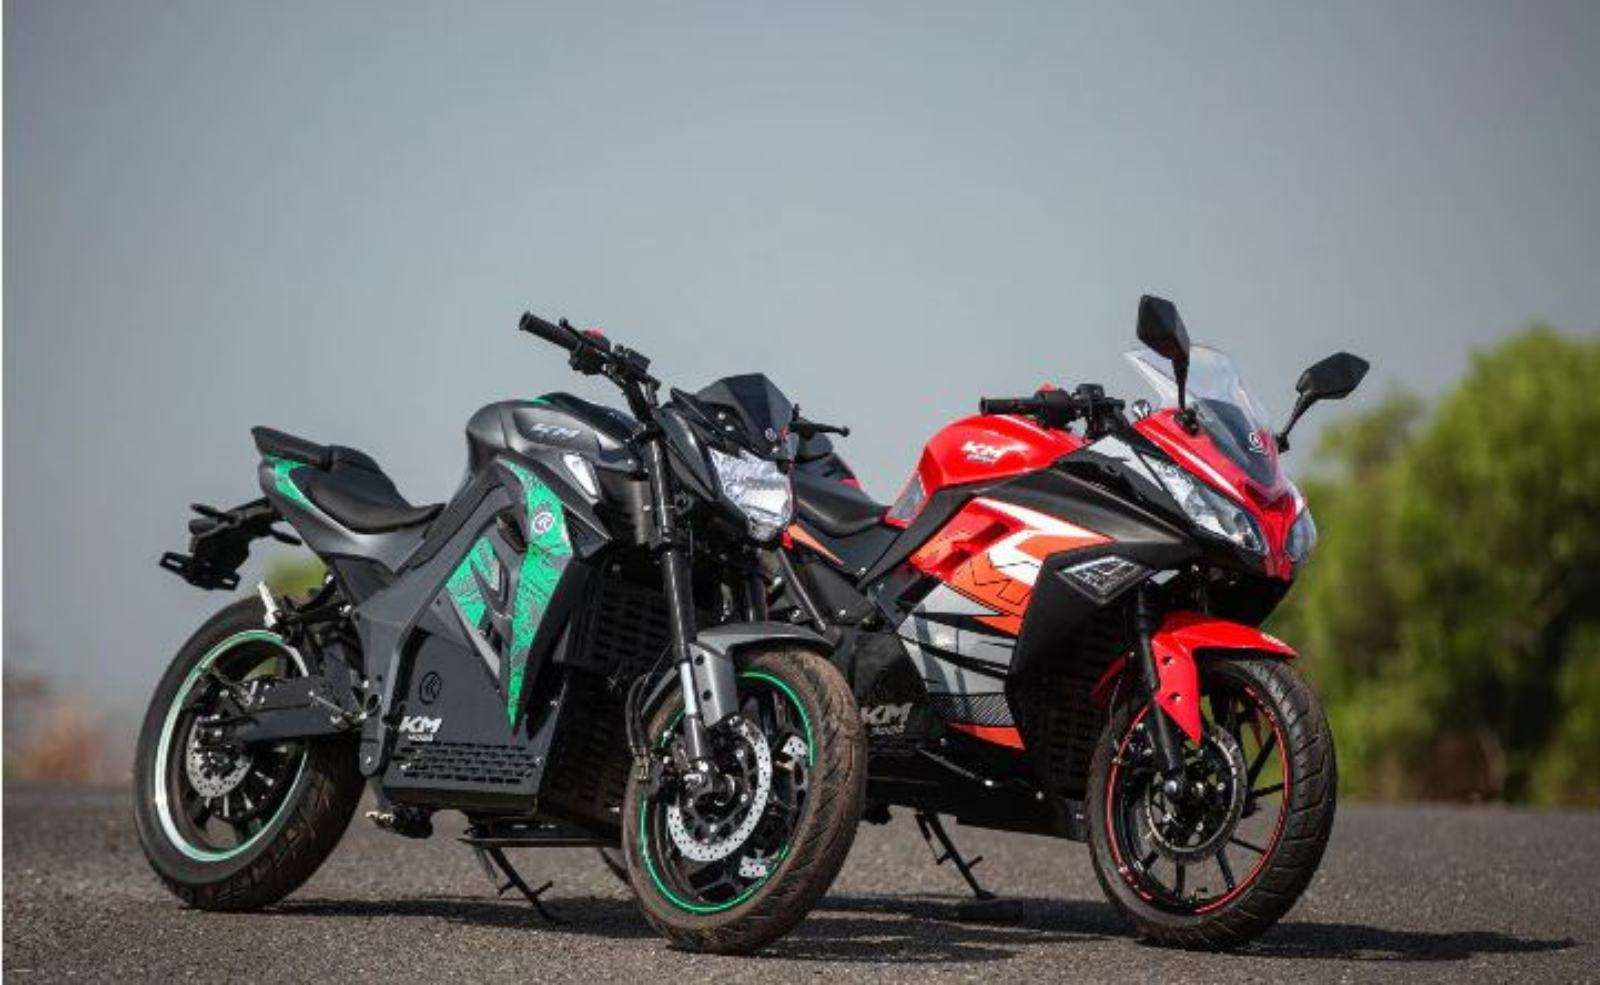 Kabira Motorcycles' 5000 Units Sold Out In Just 4 Days!